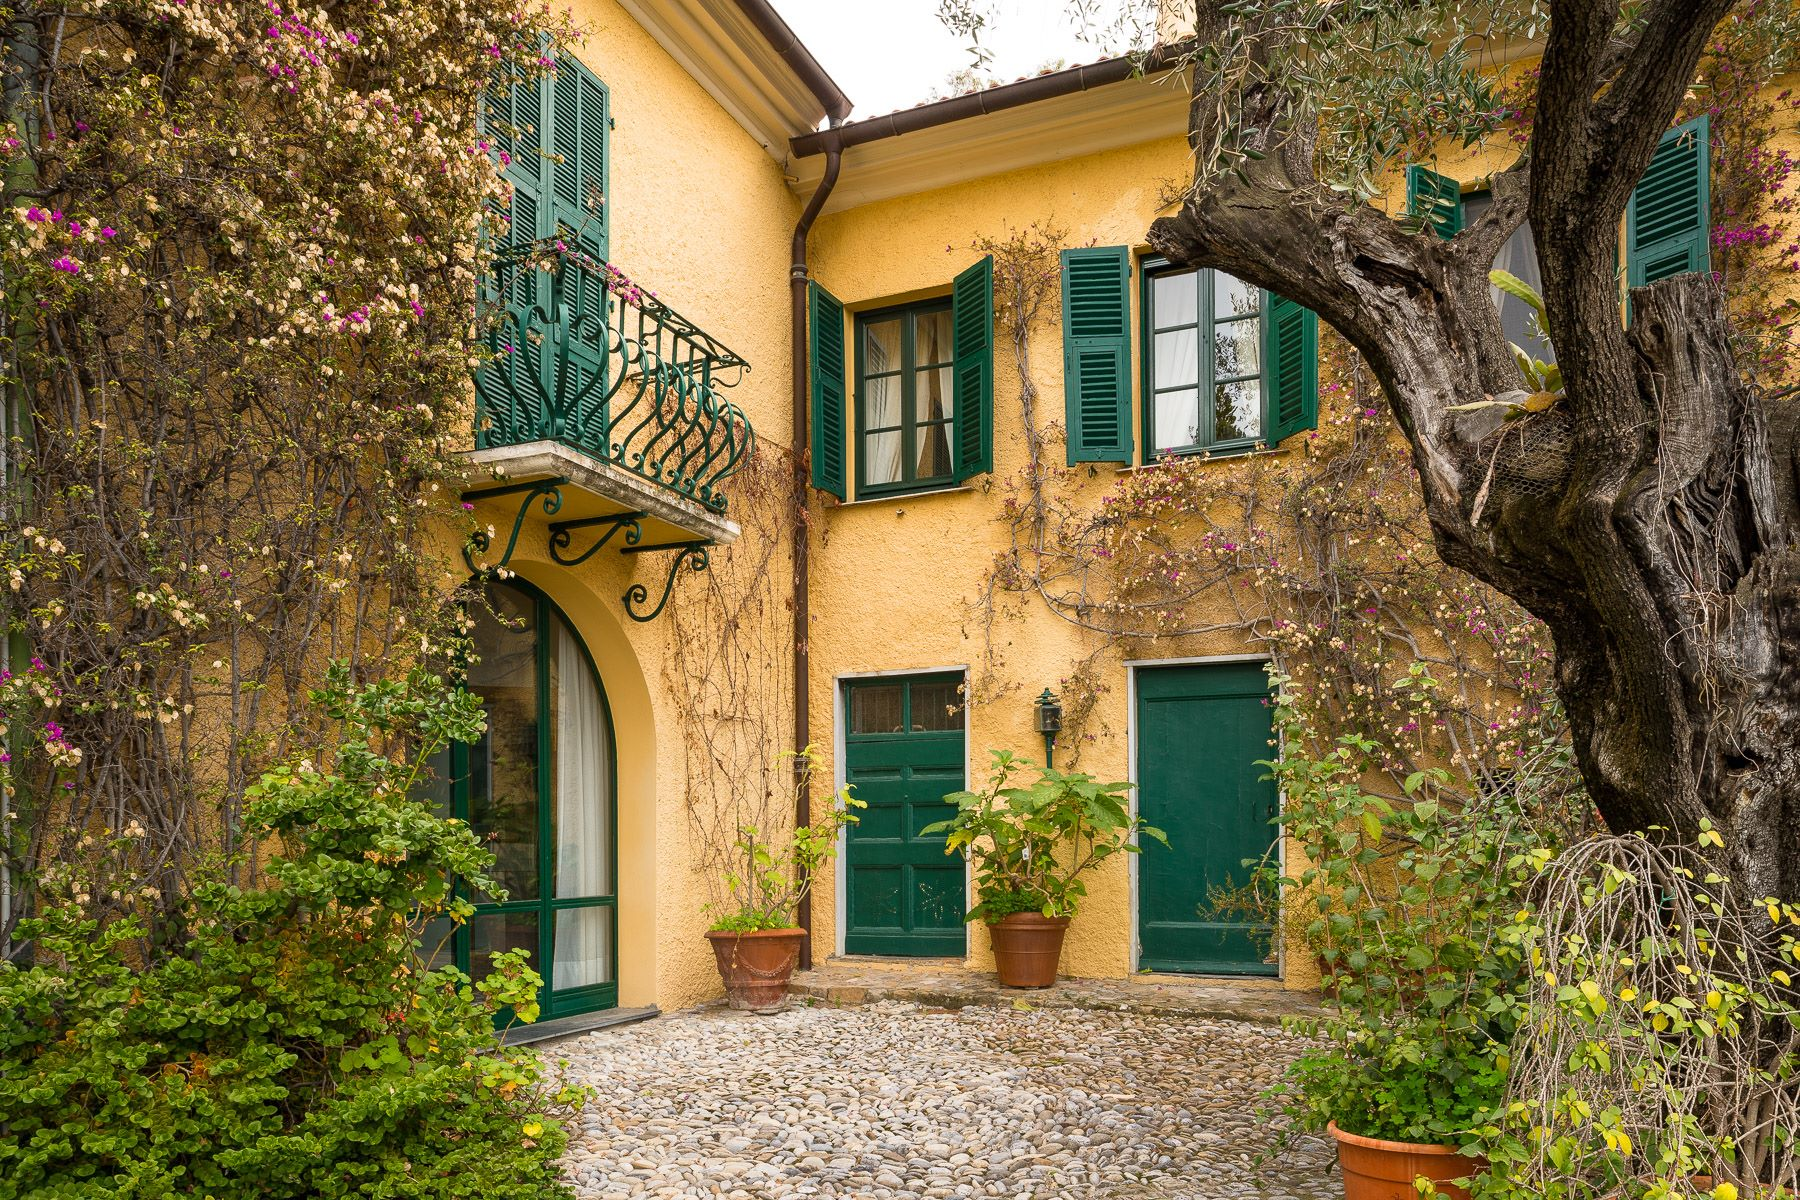 شقة للـ Sale في Charming apartment with private access to the sea in a historic Villa Ventimiglia, Imperia, Italy